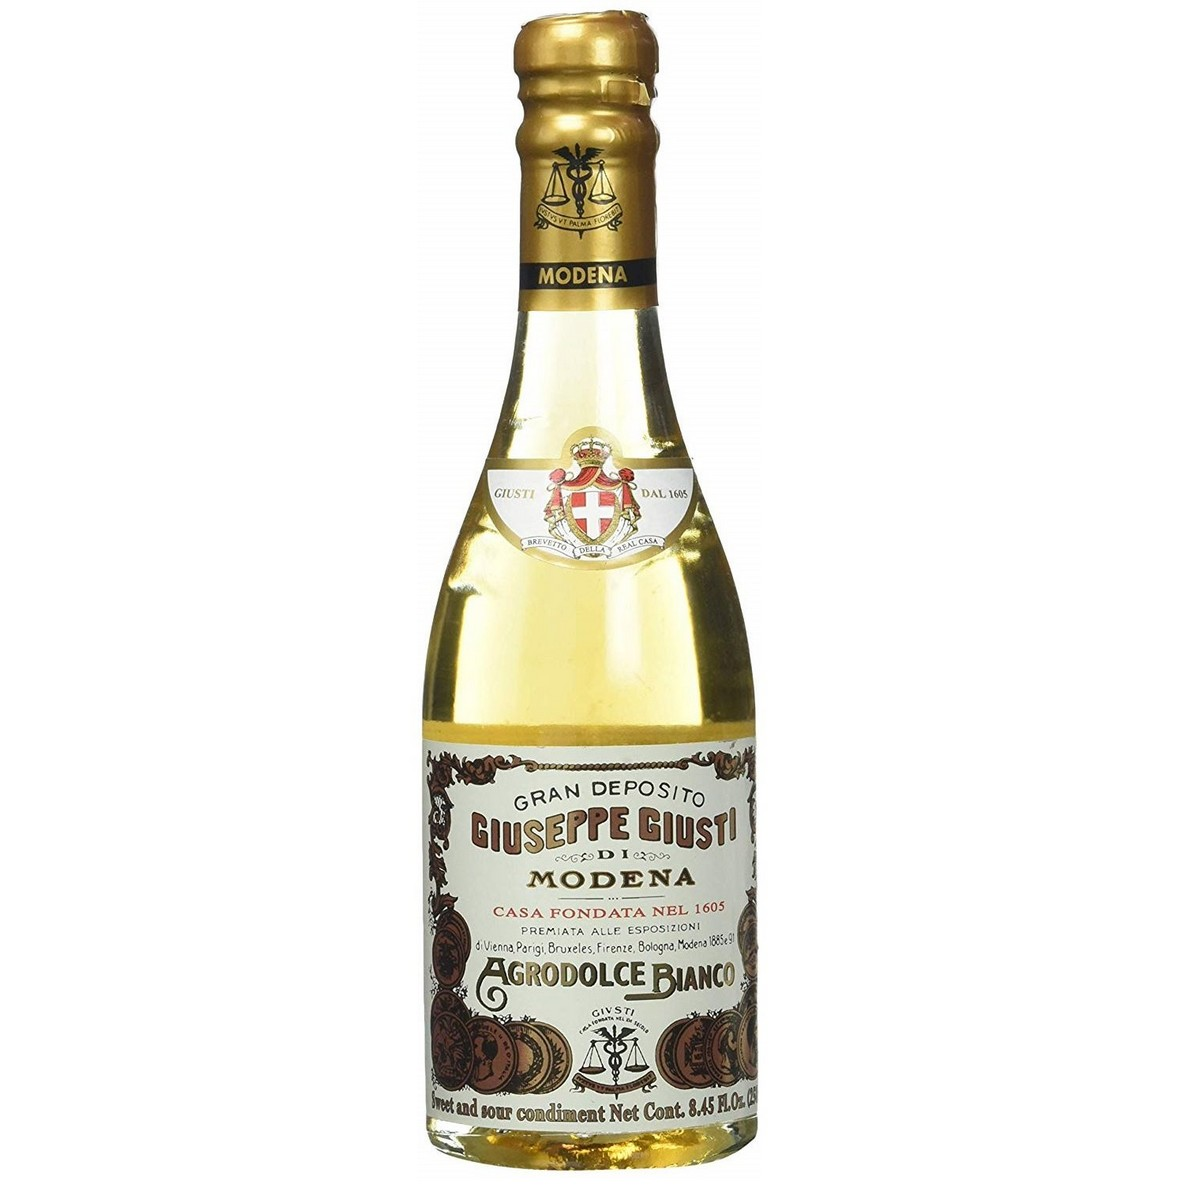 Agrodolce Bianco - Champagnotta 250 ml